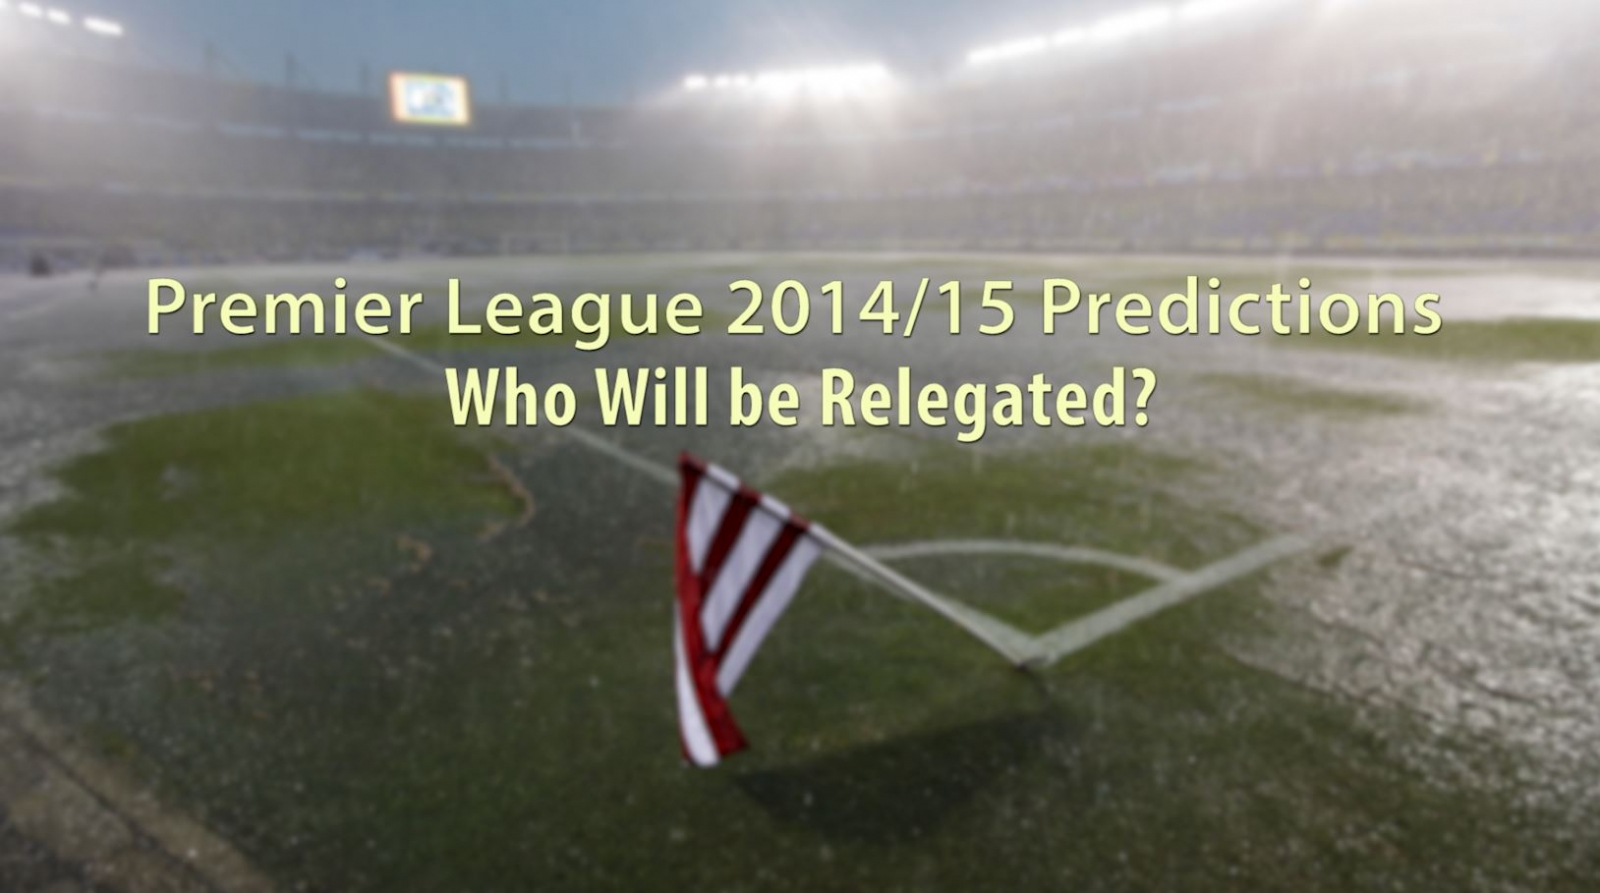 Premier League 2014/15 Predictions: Who Will Be Relegated?